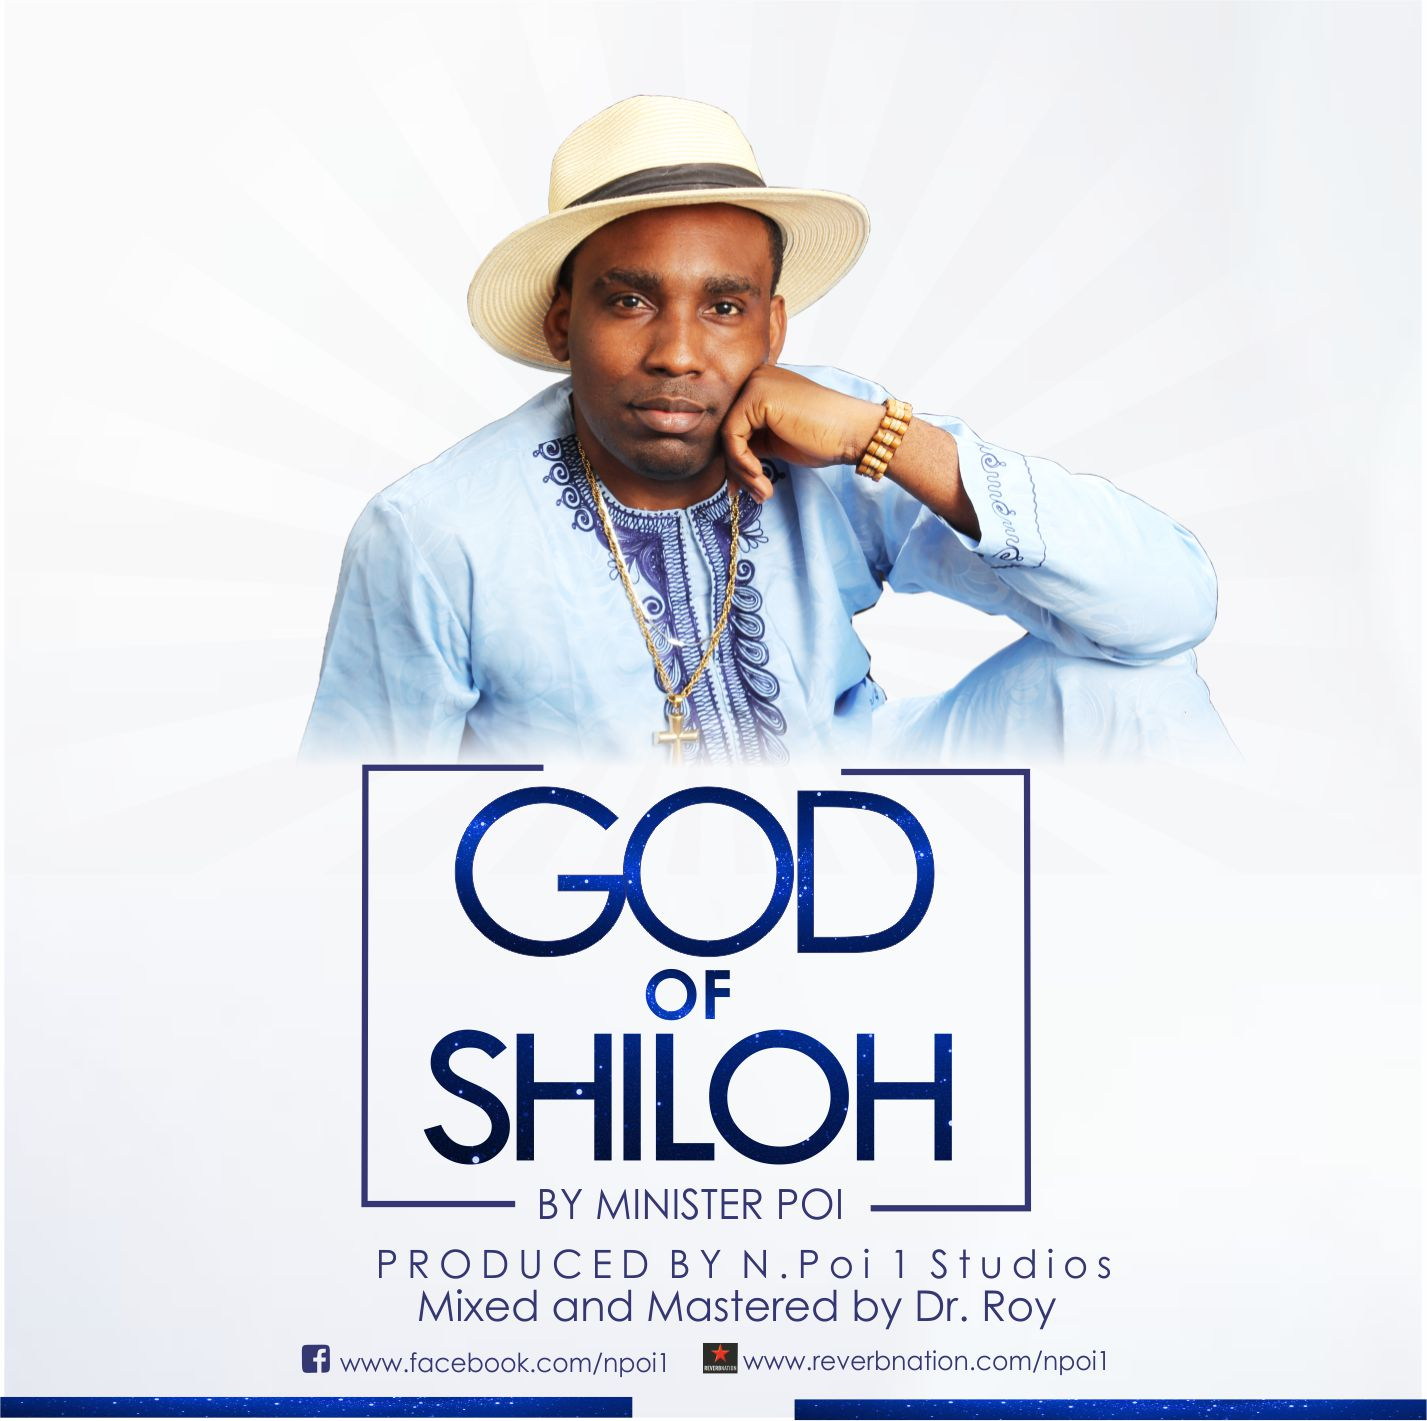 Music: God Of Shiloh ~ Minister Poi [@NPoi1]